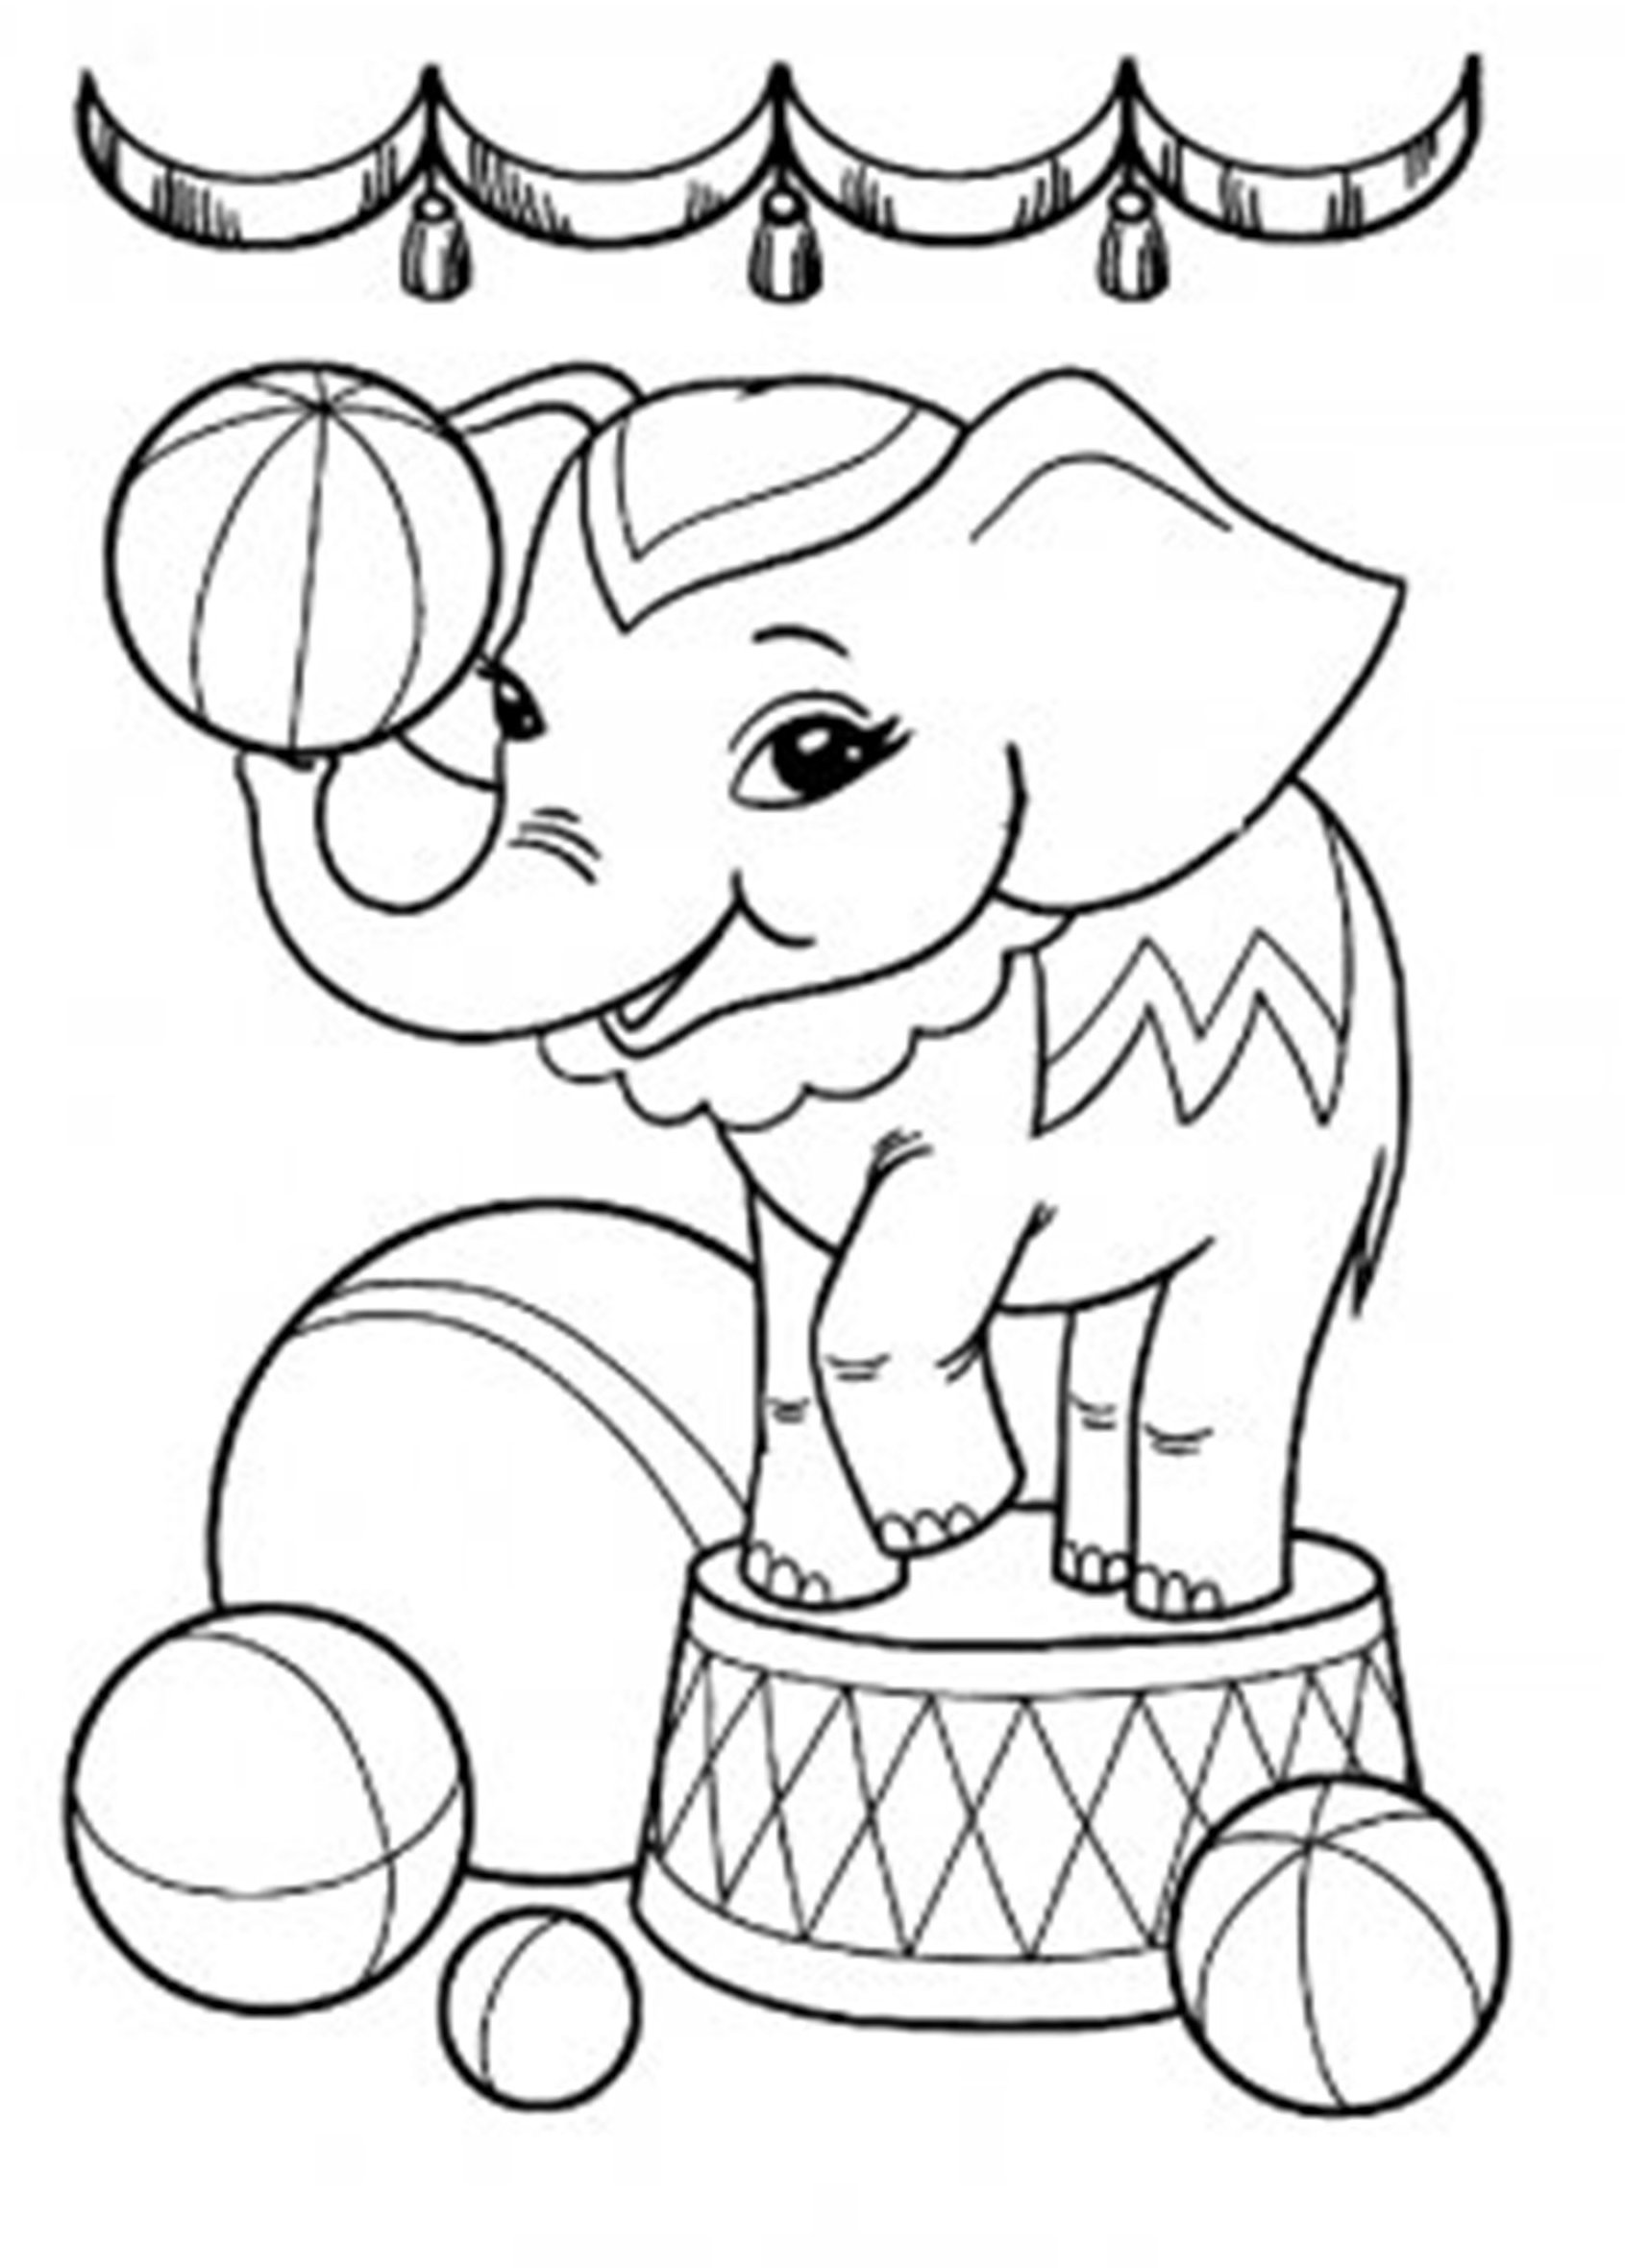 kids coloring sheets rescue from toy story coloring pages for kids printable sheets coloring kids